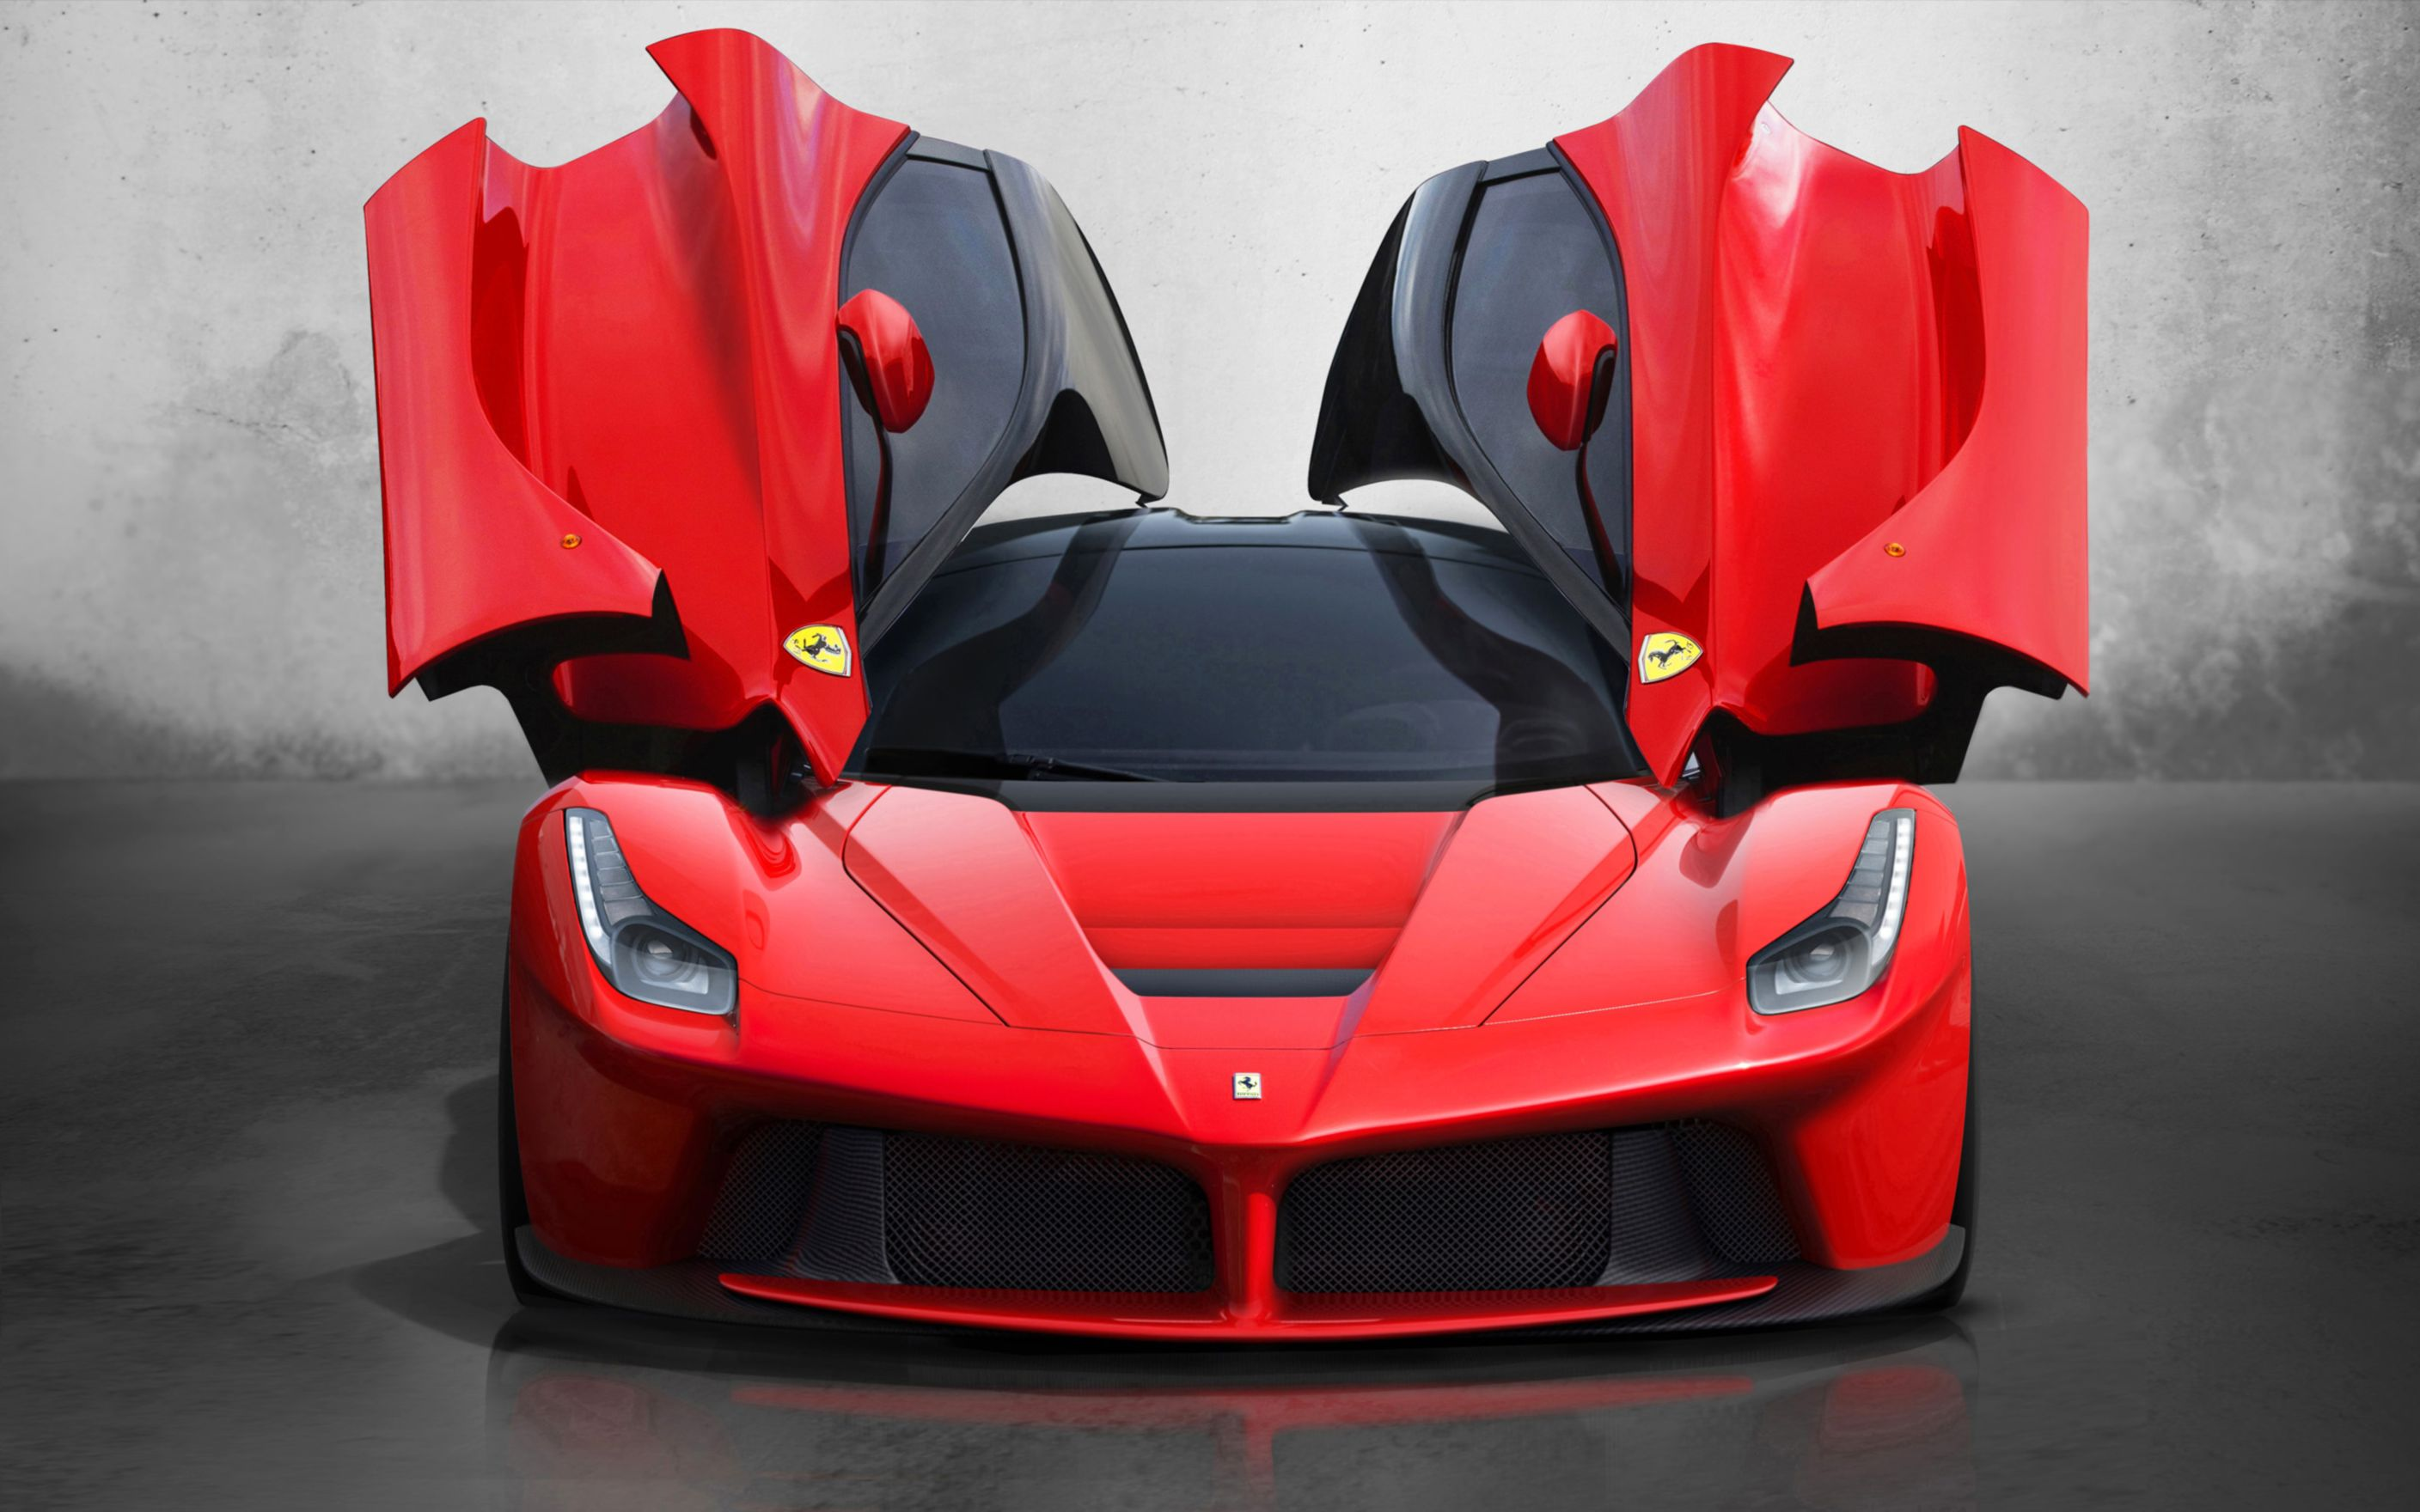 Download free HD Ferrari Laferrari 2013 Wide Wallpaper, image